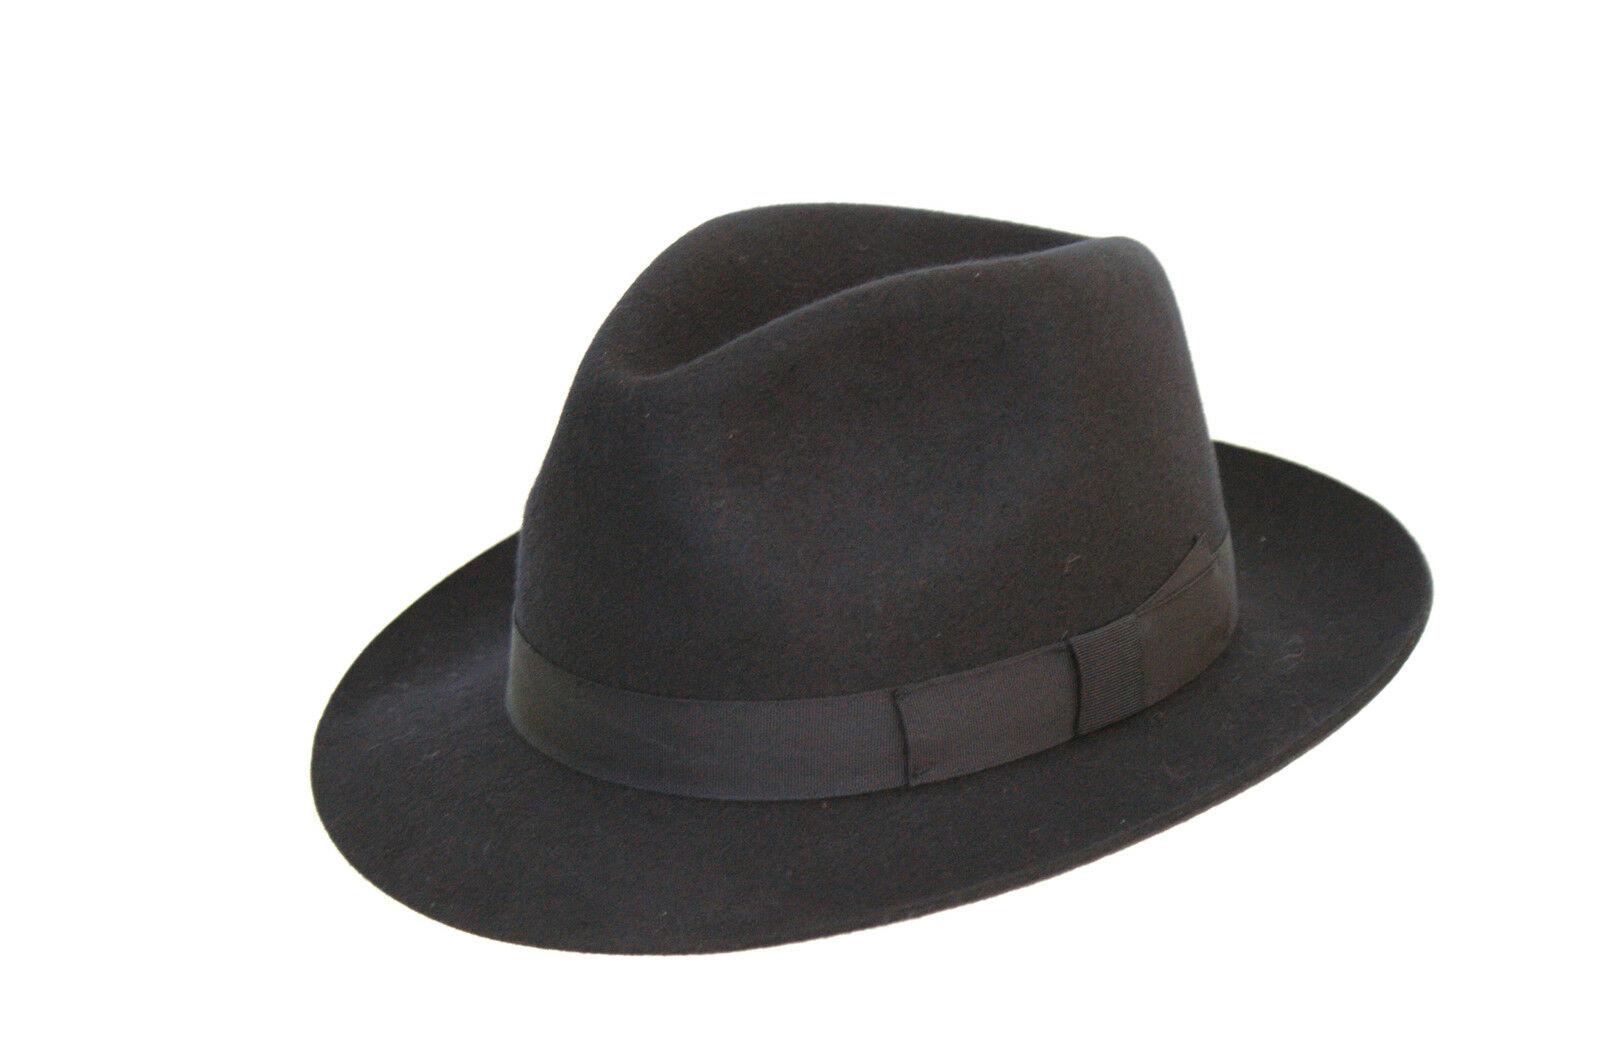 DH Maroon Hand Made Gents Fedora Felt Trilby Hat with Wider Brim 100/% Wool New